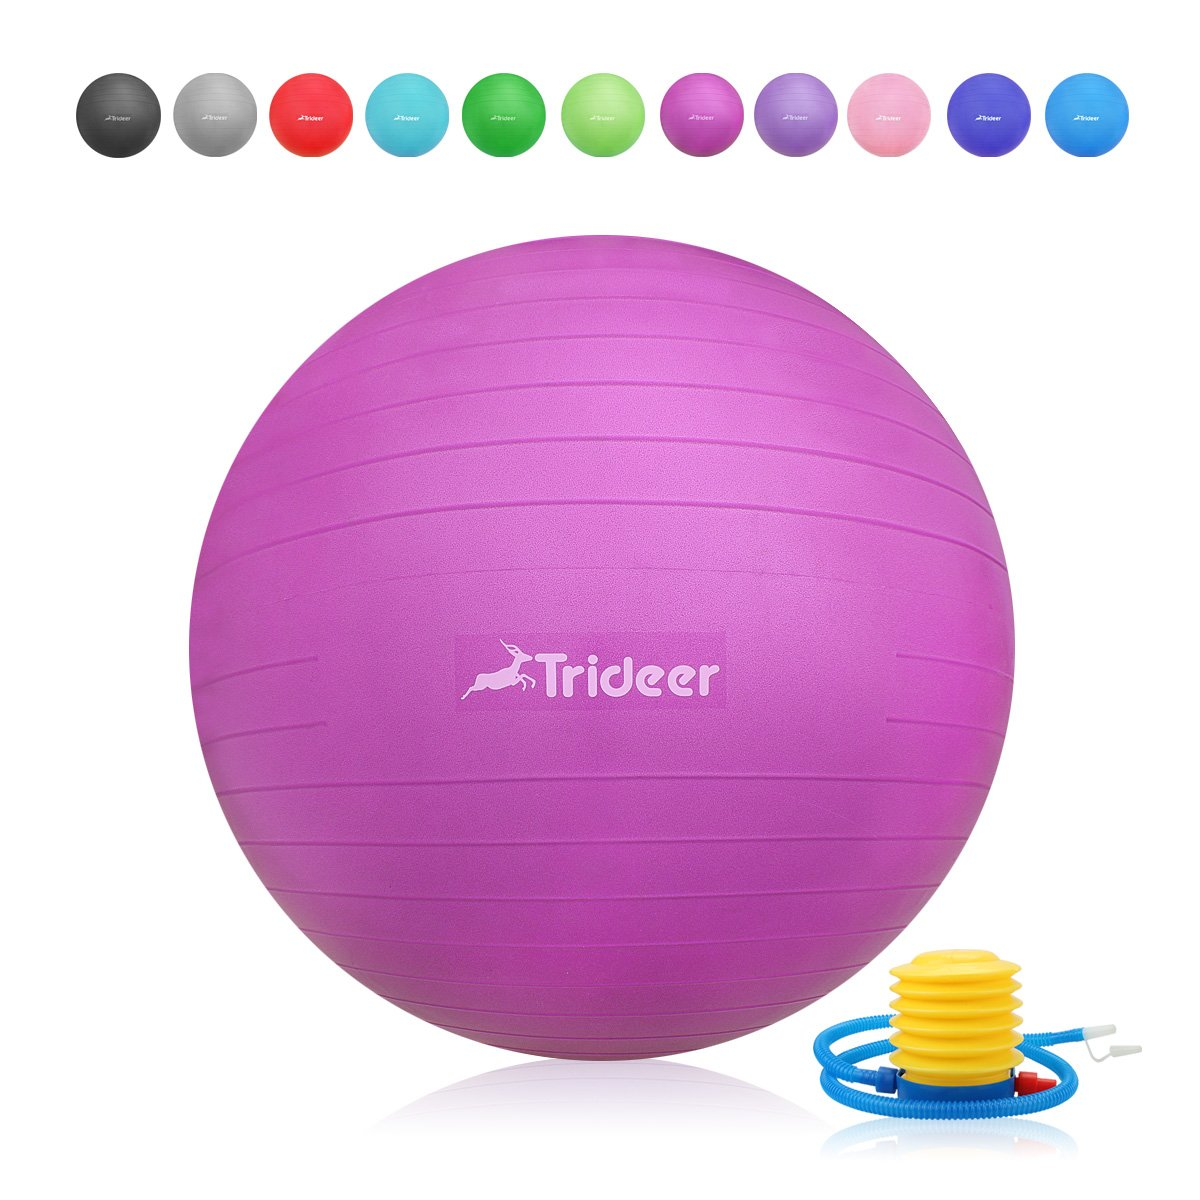 Trideer Exercise Ball, Yoga Ball, Birthing Ball with Quick Pump, Anti-Burst & Extra Thick, Heavy Duty Ball Chair, Stability Ball Supports 2200lbs (Office&Home) (Fuchsia, S (38-45cm))